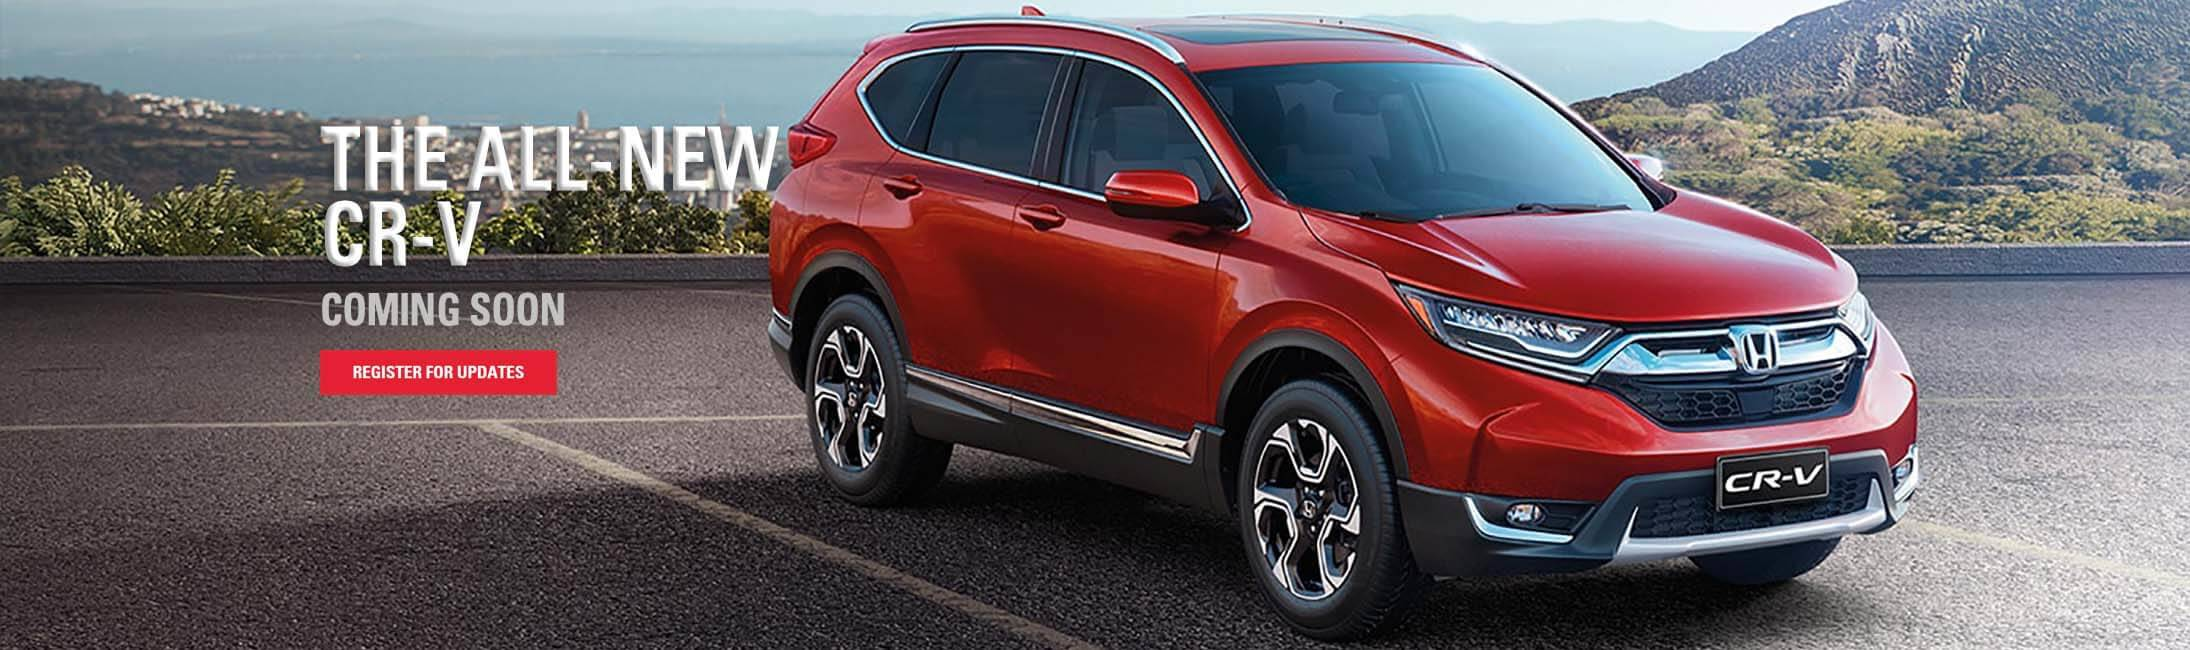 The All-New CR-V